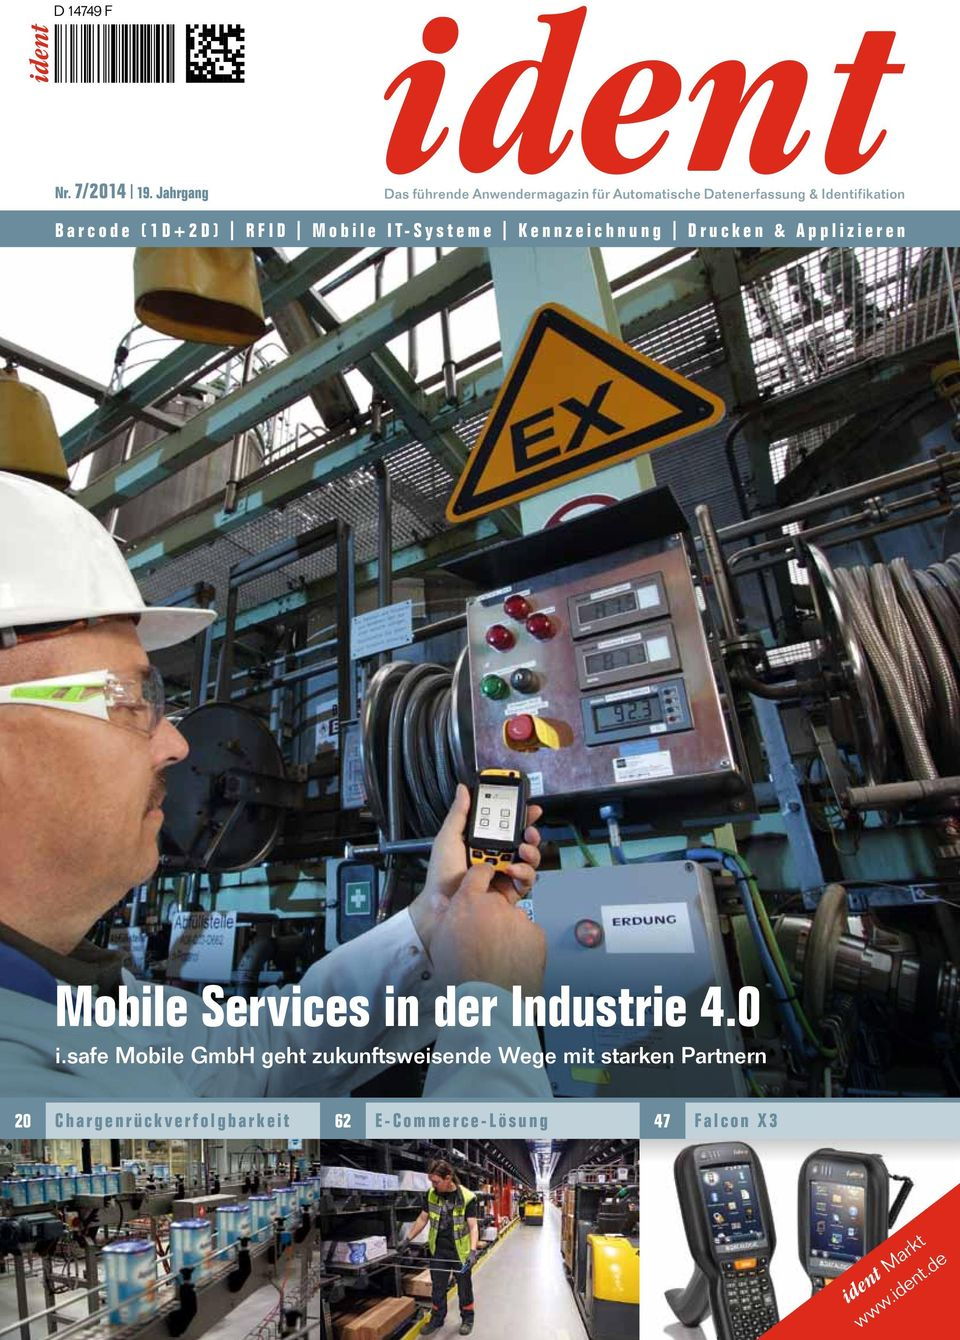 (1D+2D) RFID Mobile IT-Systeme Kennzeichnung Drucken & Applizieren Mobile Services in der